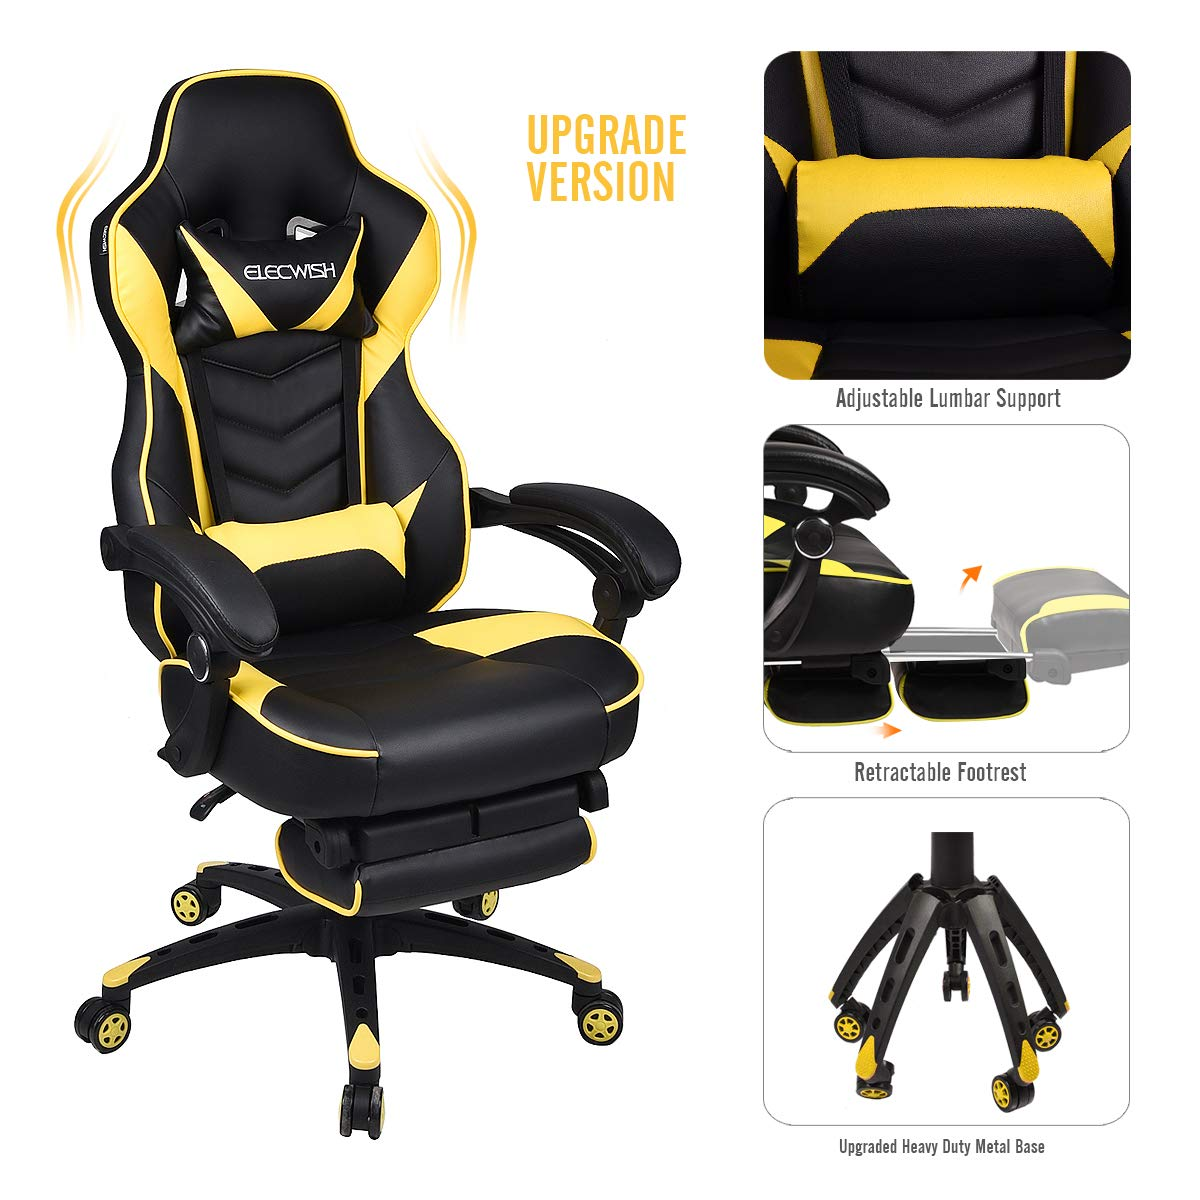 Video Gaming Chair Racing Office - PU Leather High Back Ergonomic Adjustable Swivel Executive Computer Desk Task Large Size with Footrest,Headrest and Lumbar Support (Black+Yellow)